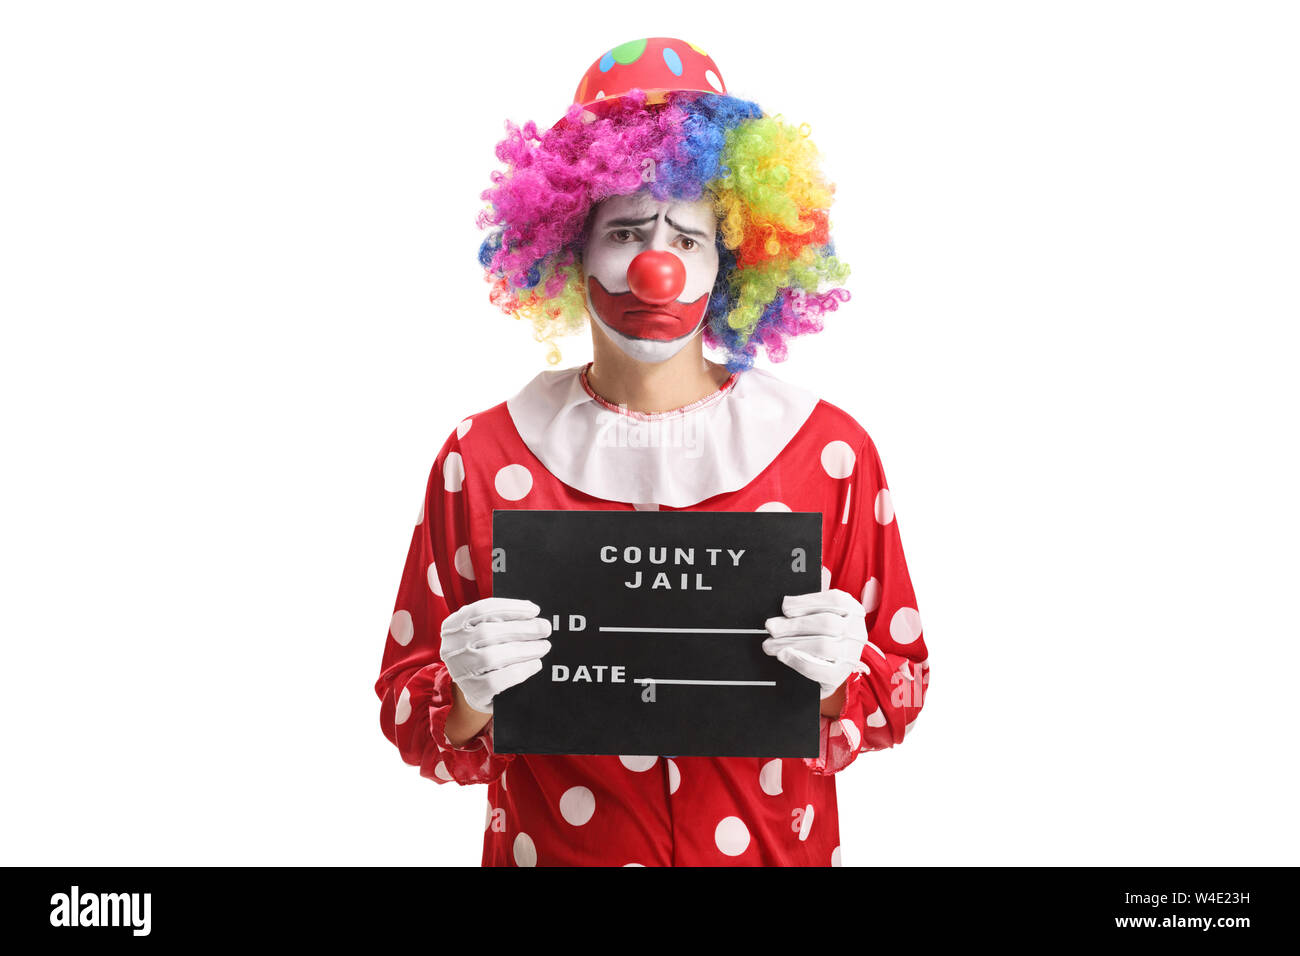 Sad Clown High Resolution Stock Photography And Images Alamy